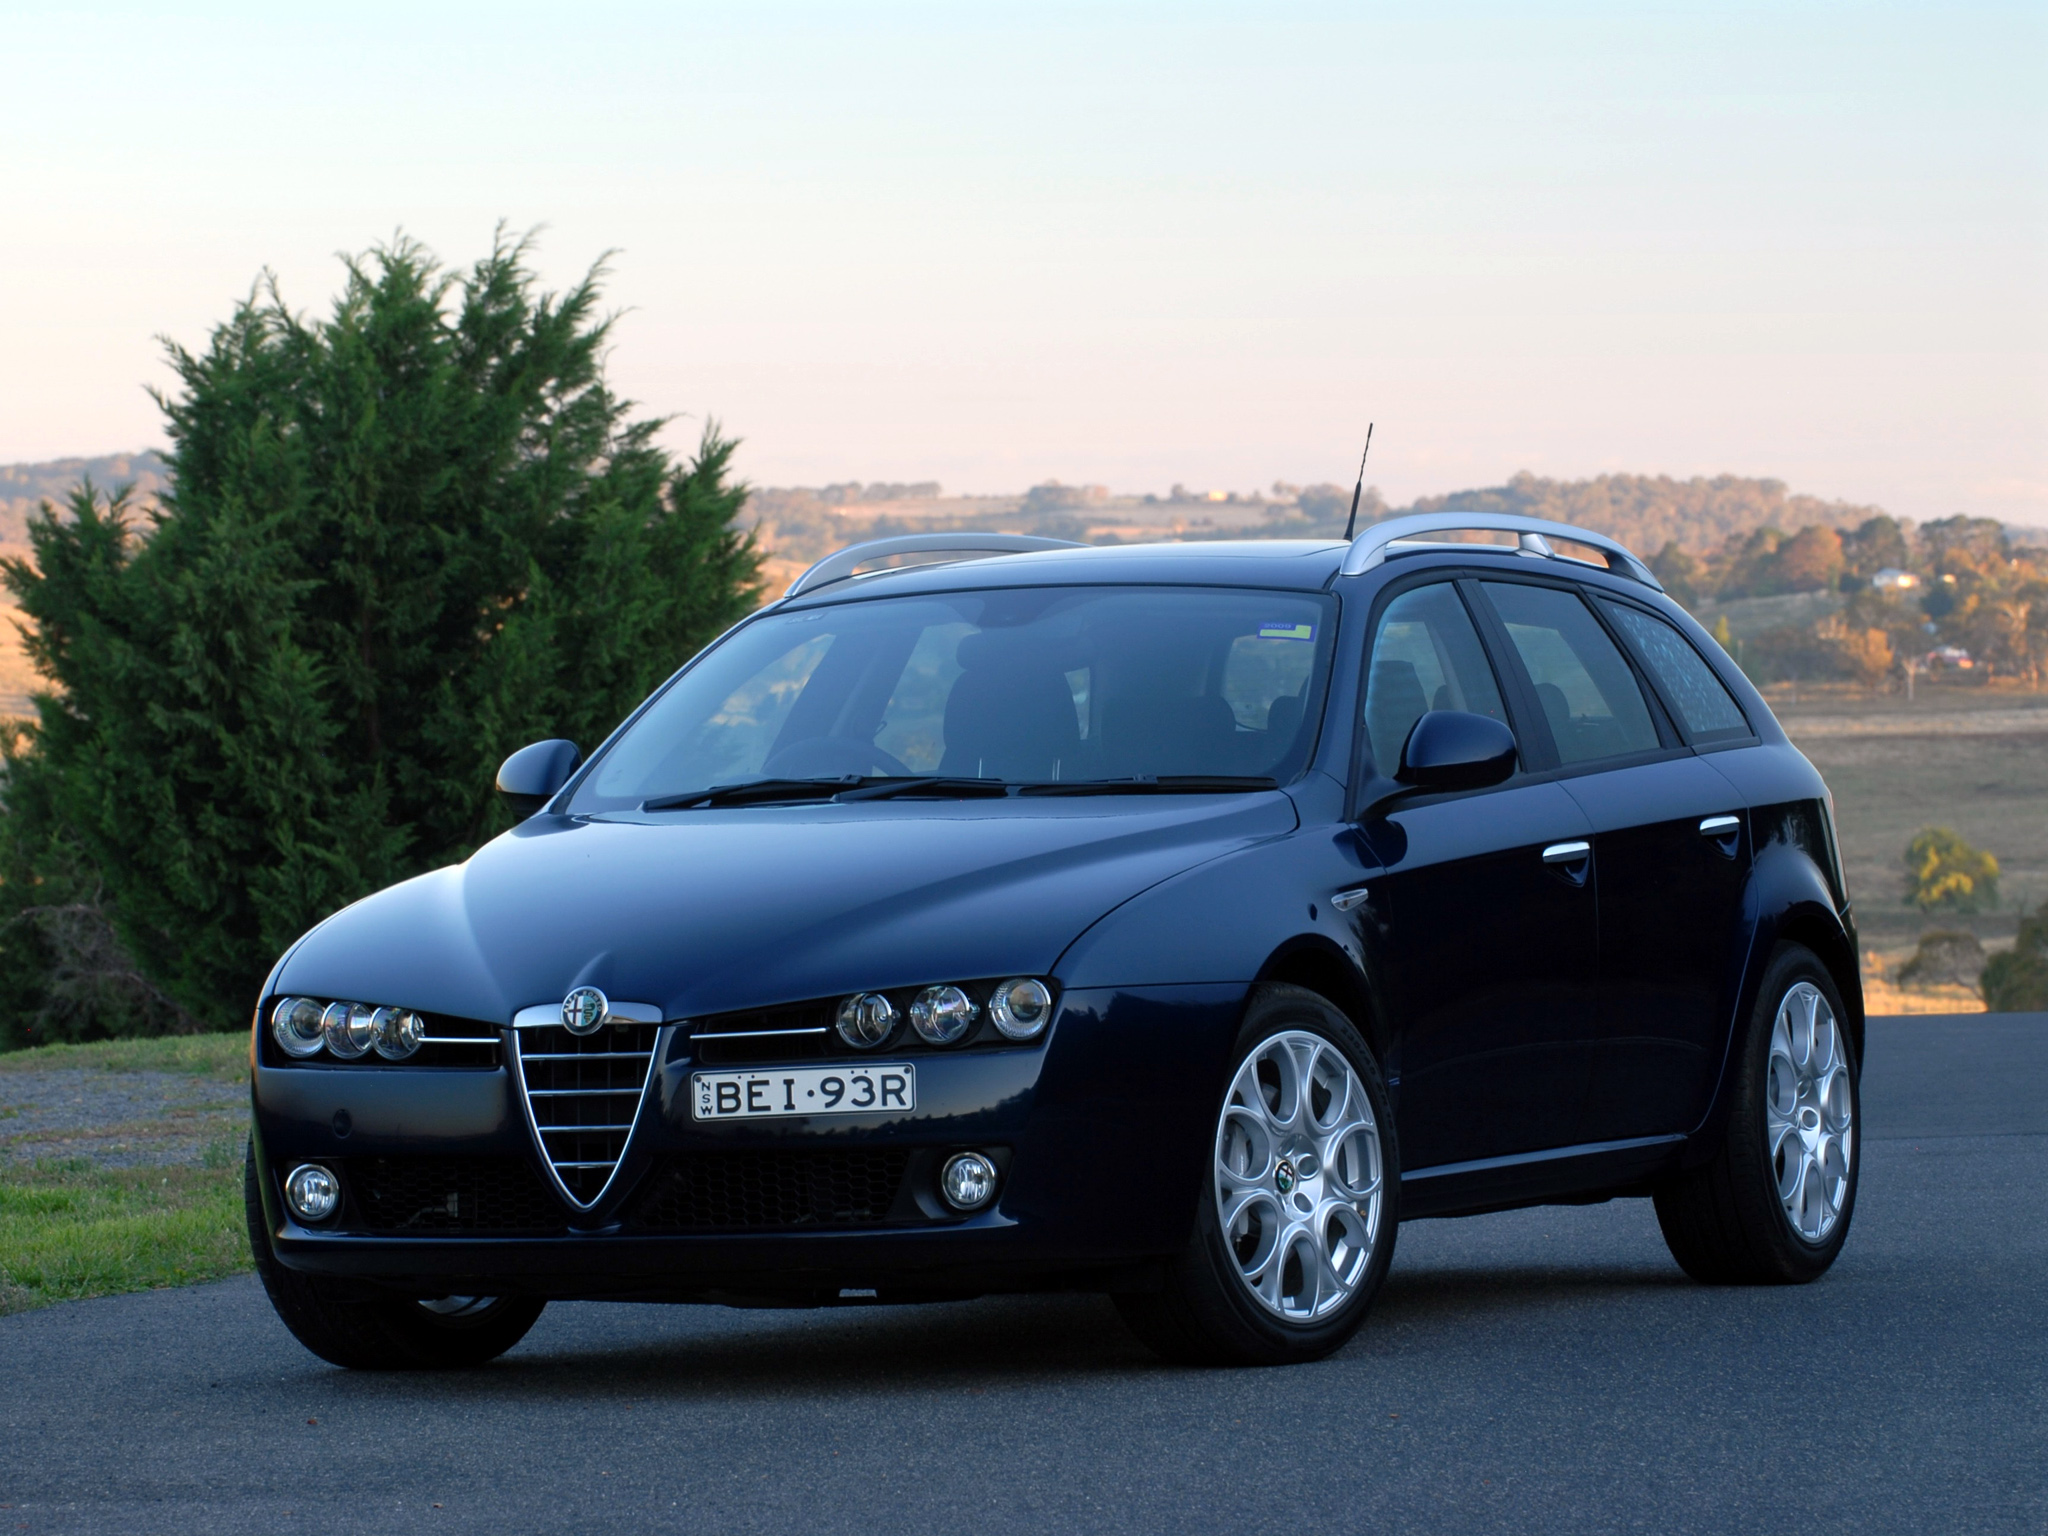 2016 alfa romeo 159 sportwagon pictures information and. Black Bedroom Furniture Sets. Home Design Ideas